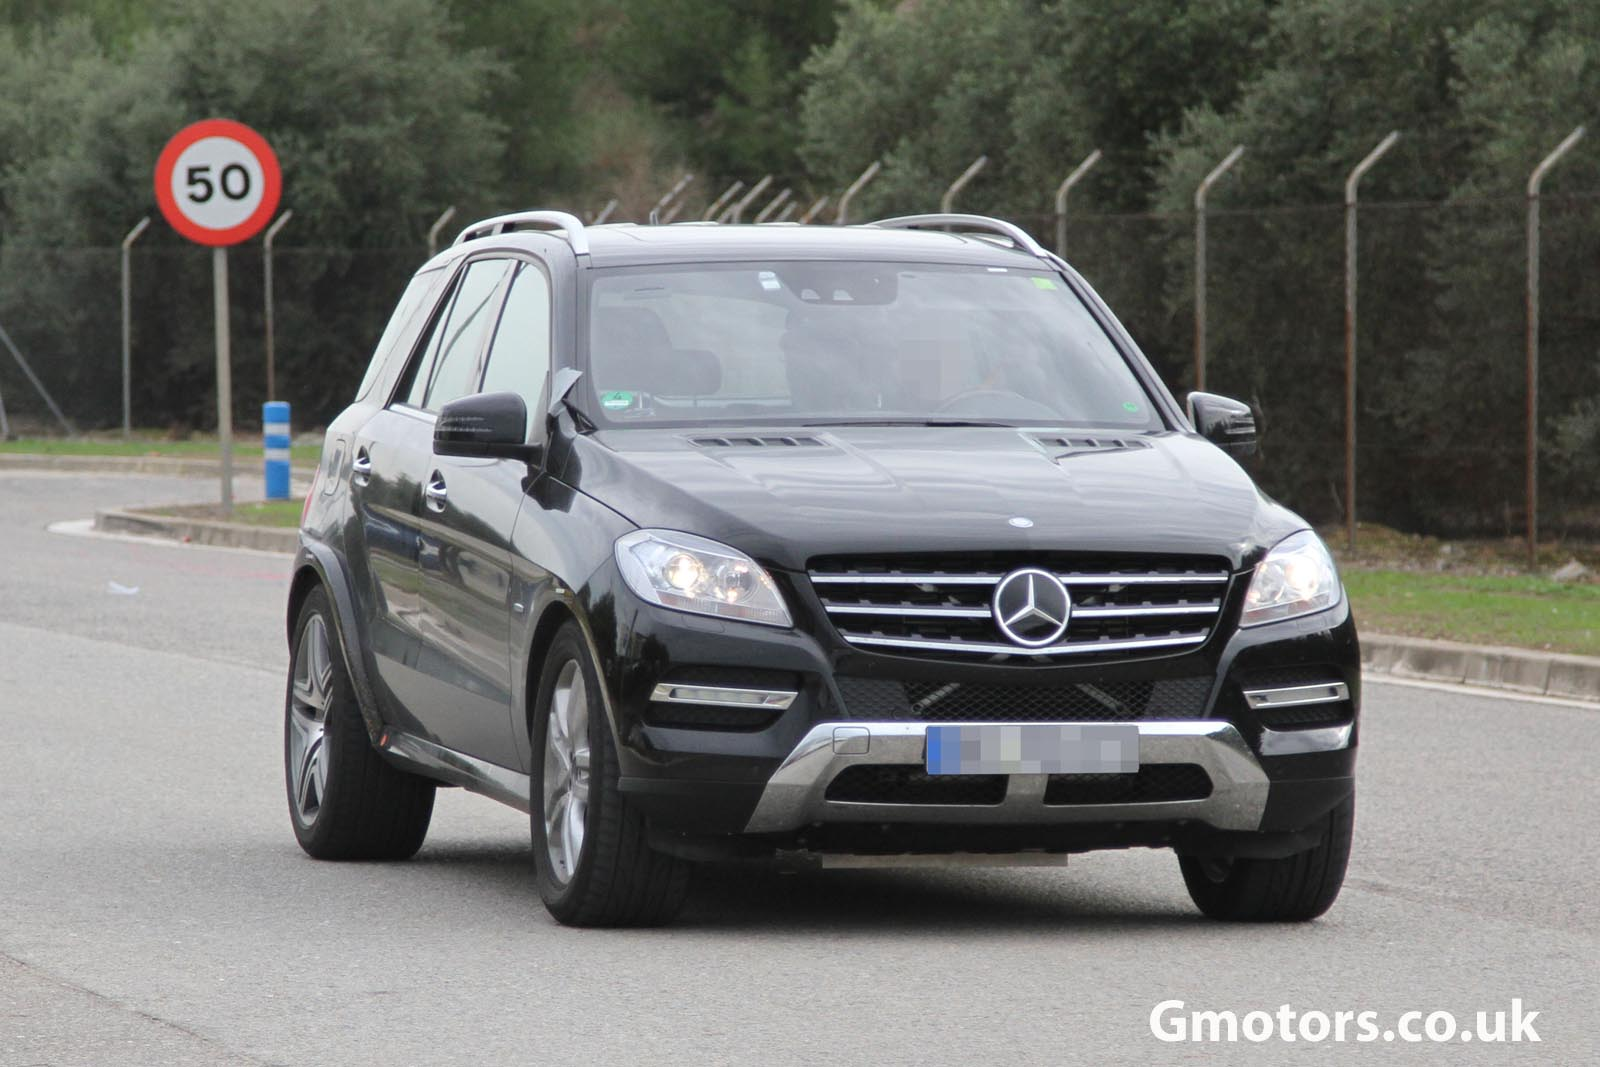 2015 - [Mercedes] GLE Coupé [C292] - Page 2 Mercedes-Benz-MLC-Chassis-Testing-Mule-7